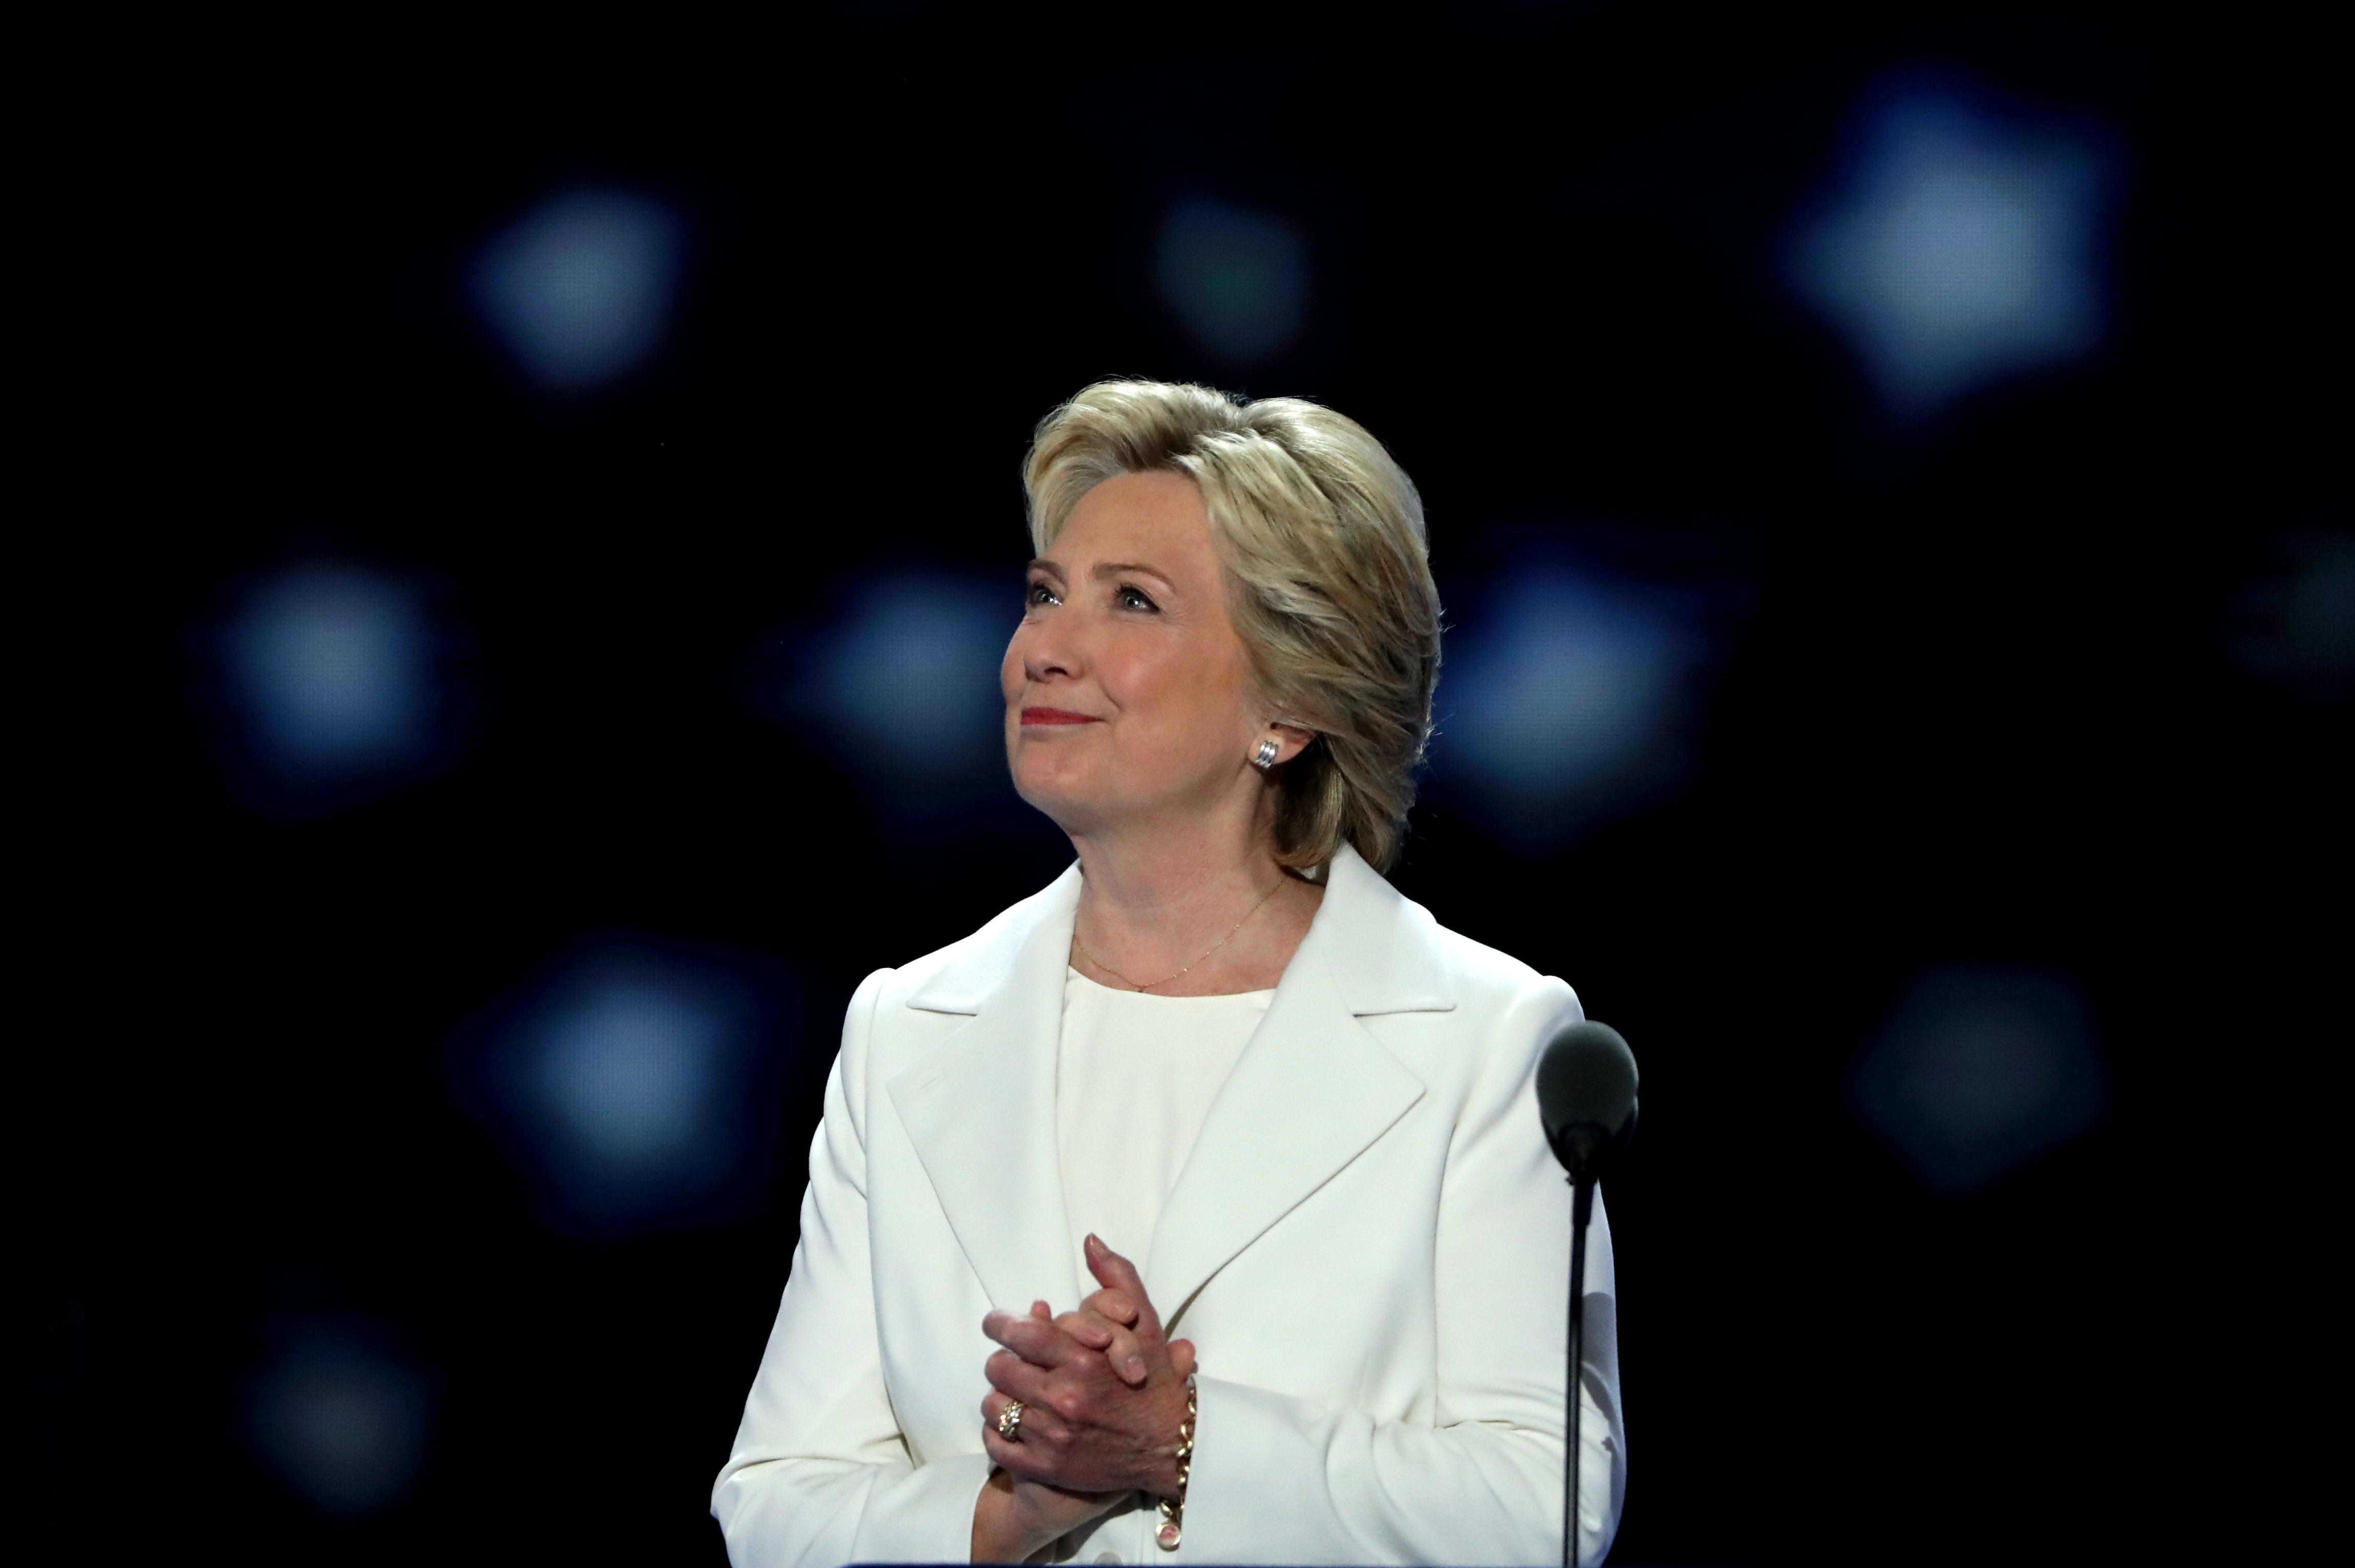 Best ideas about Hillary Rodham Clinton on Pinterest Kellyanne conway net  worth Clinton hilary and Hillary Design Synthesis